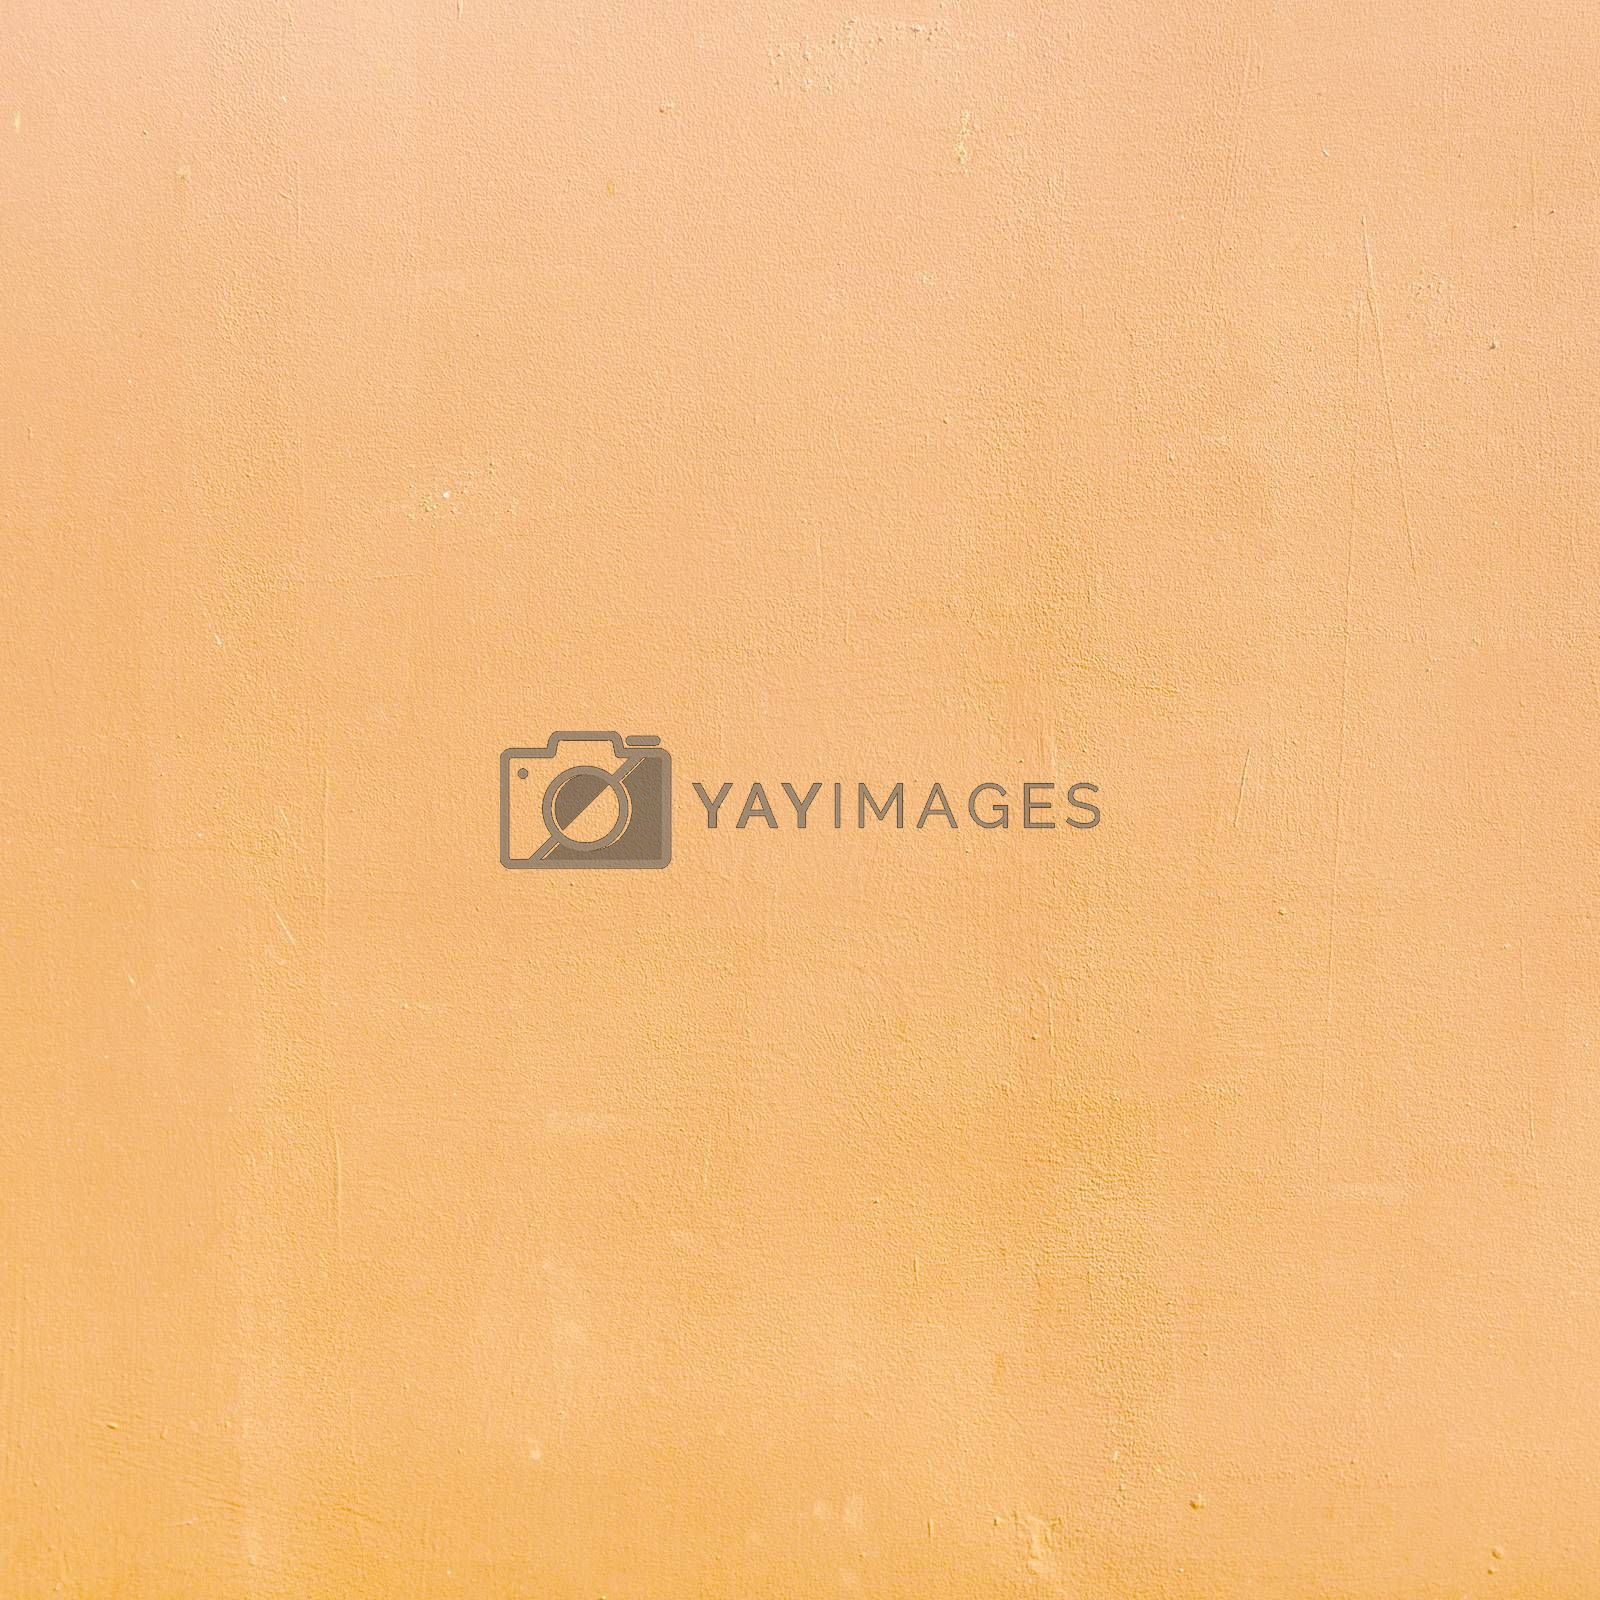 Royalty free image of orange background by meinzahn